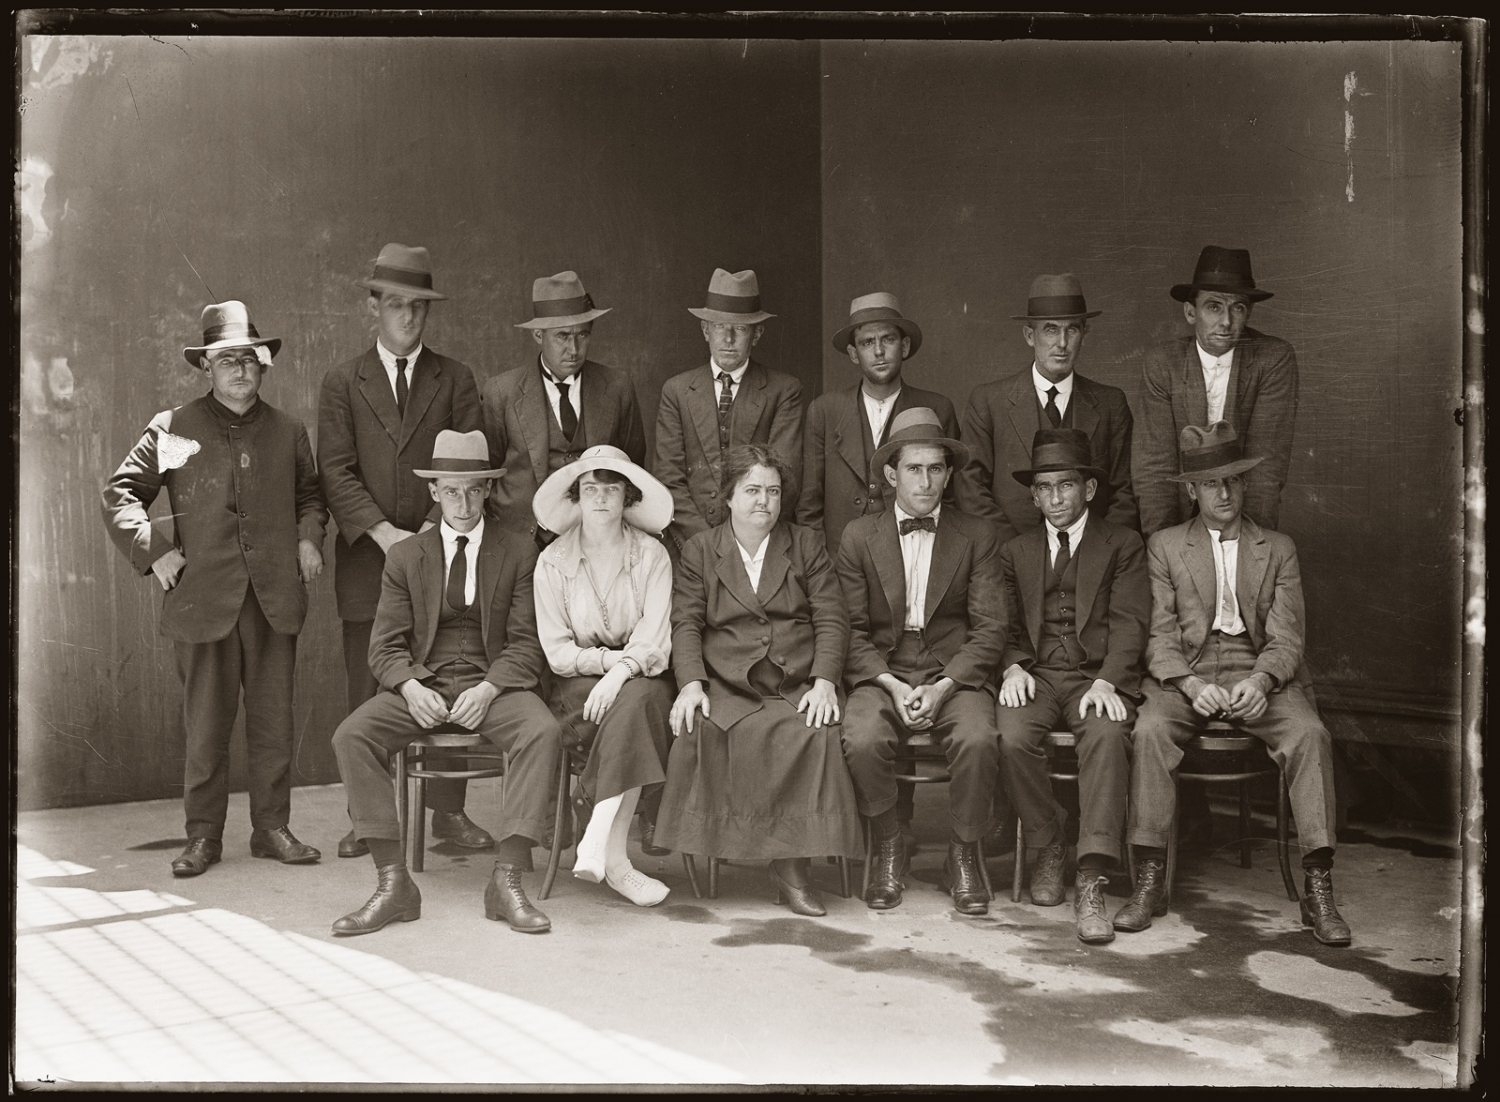 Special Photograph of group of police suspects, circa 25 January 1921, Central Police Station, Sydney